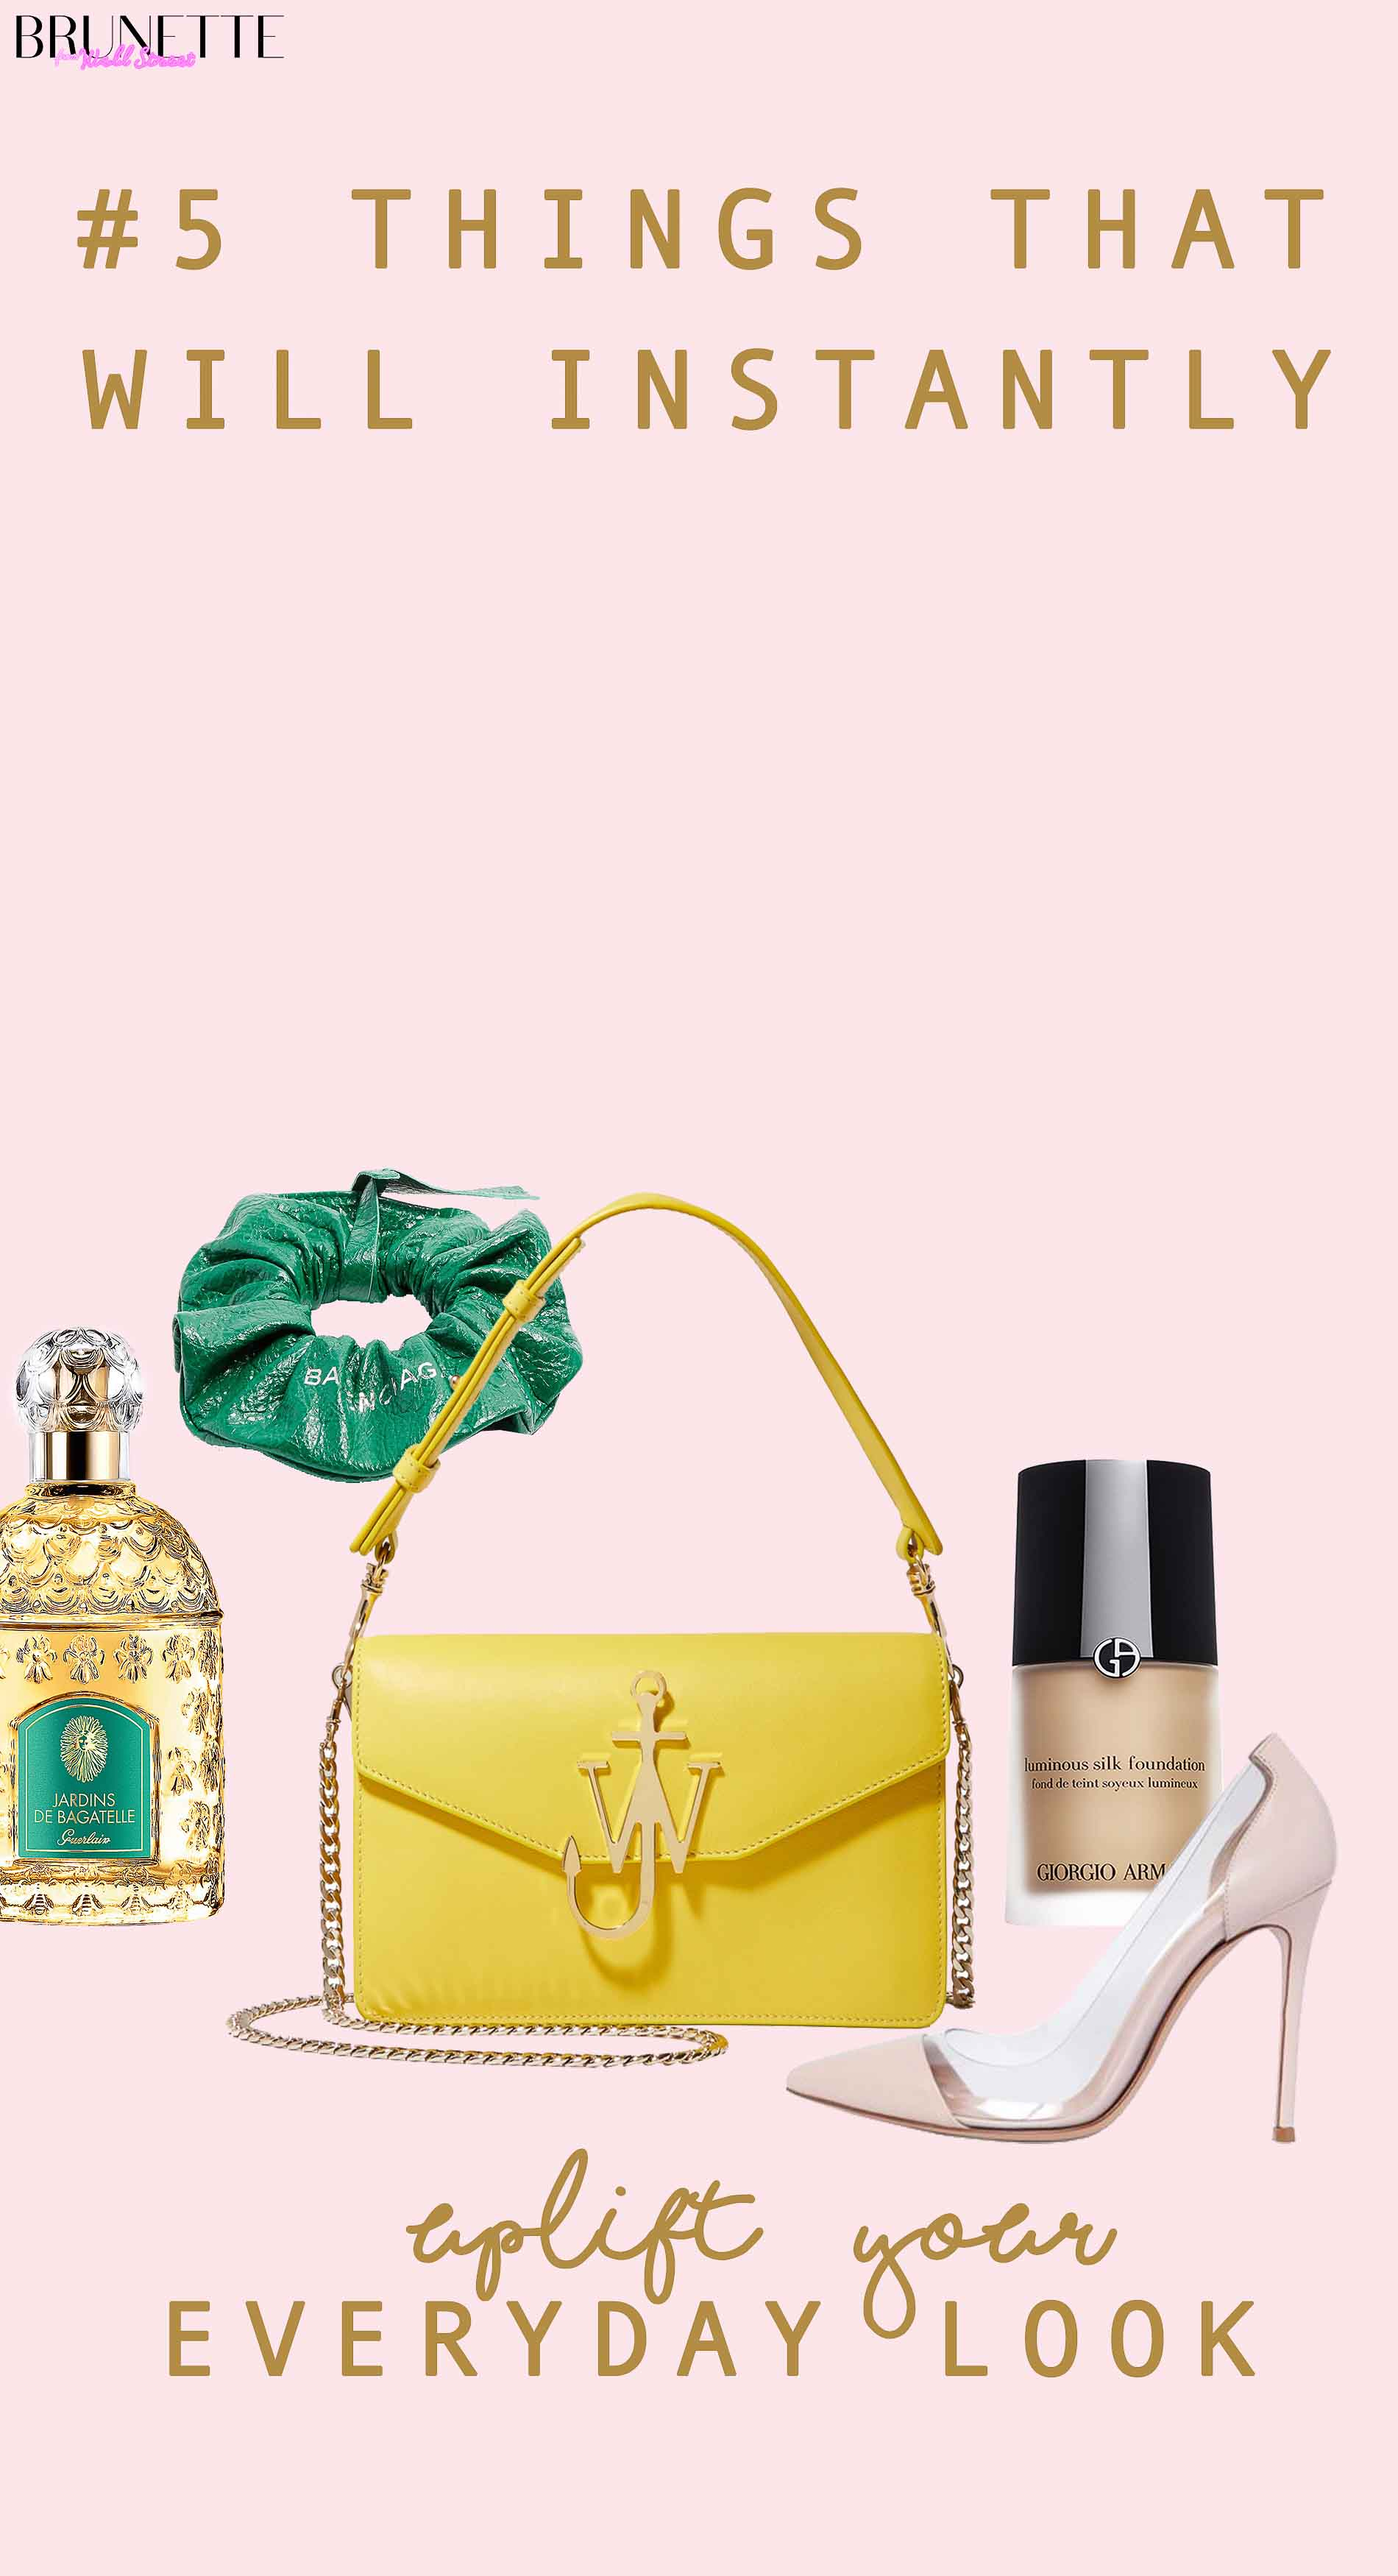 J.W. Anderson yellow bag, Balancing green scrunchie, Gianvito Rossi pumps, Giorgio Armani foundation, Guerlian perfume with text overlay #5 Things that will instantly uplift your everyday look